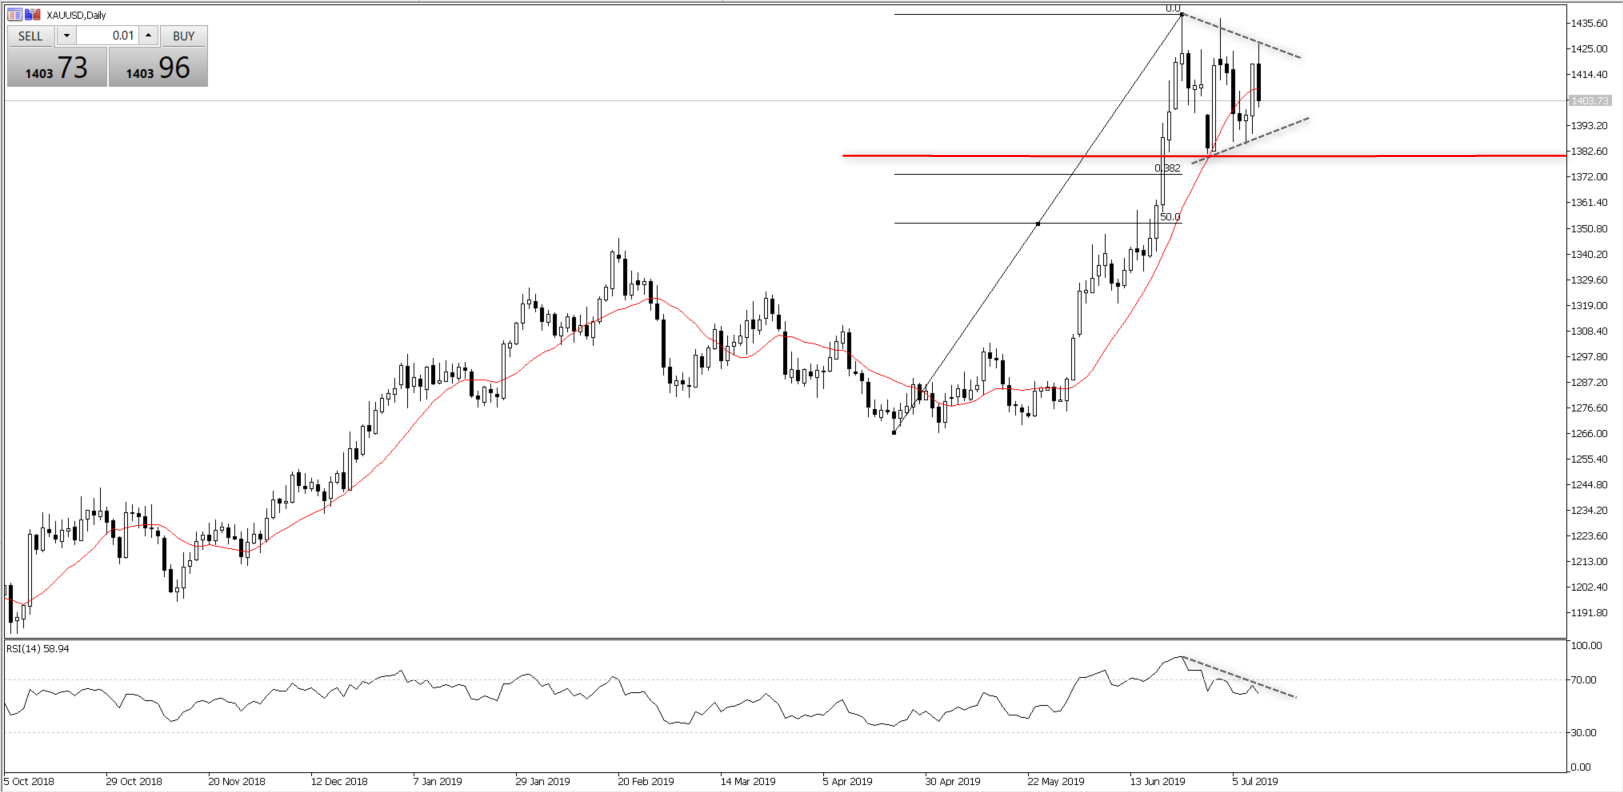 Chart of the Day - July 12, 2019 - XAUUSD daily